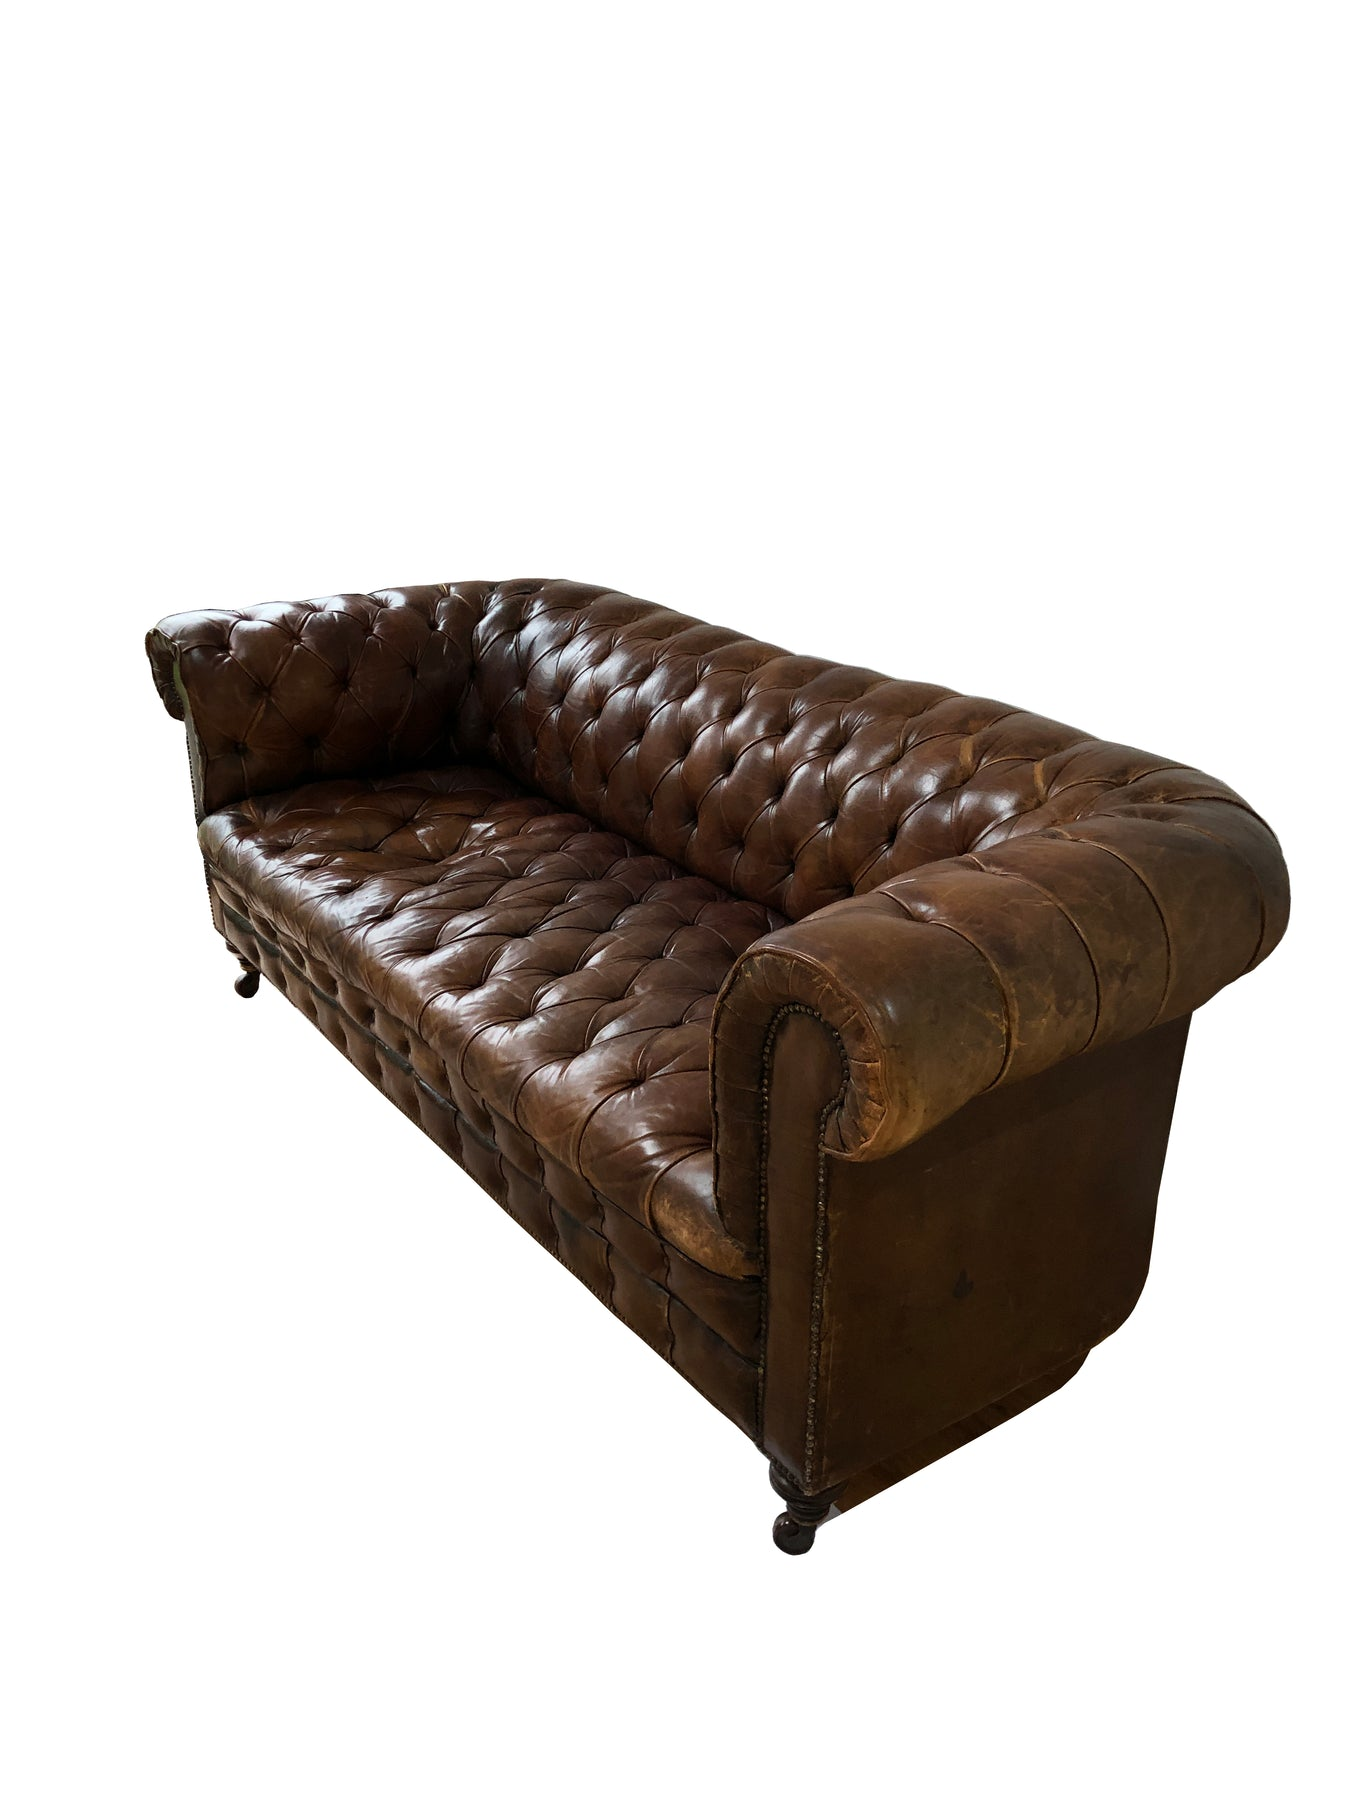 Vintage Antique Brown Leather Chesterfield Sofa John Zoffa